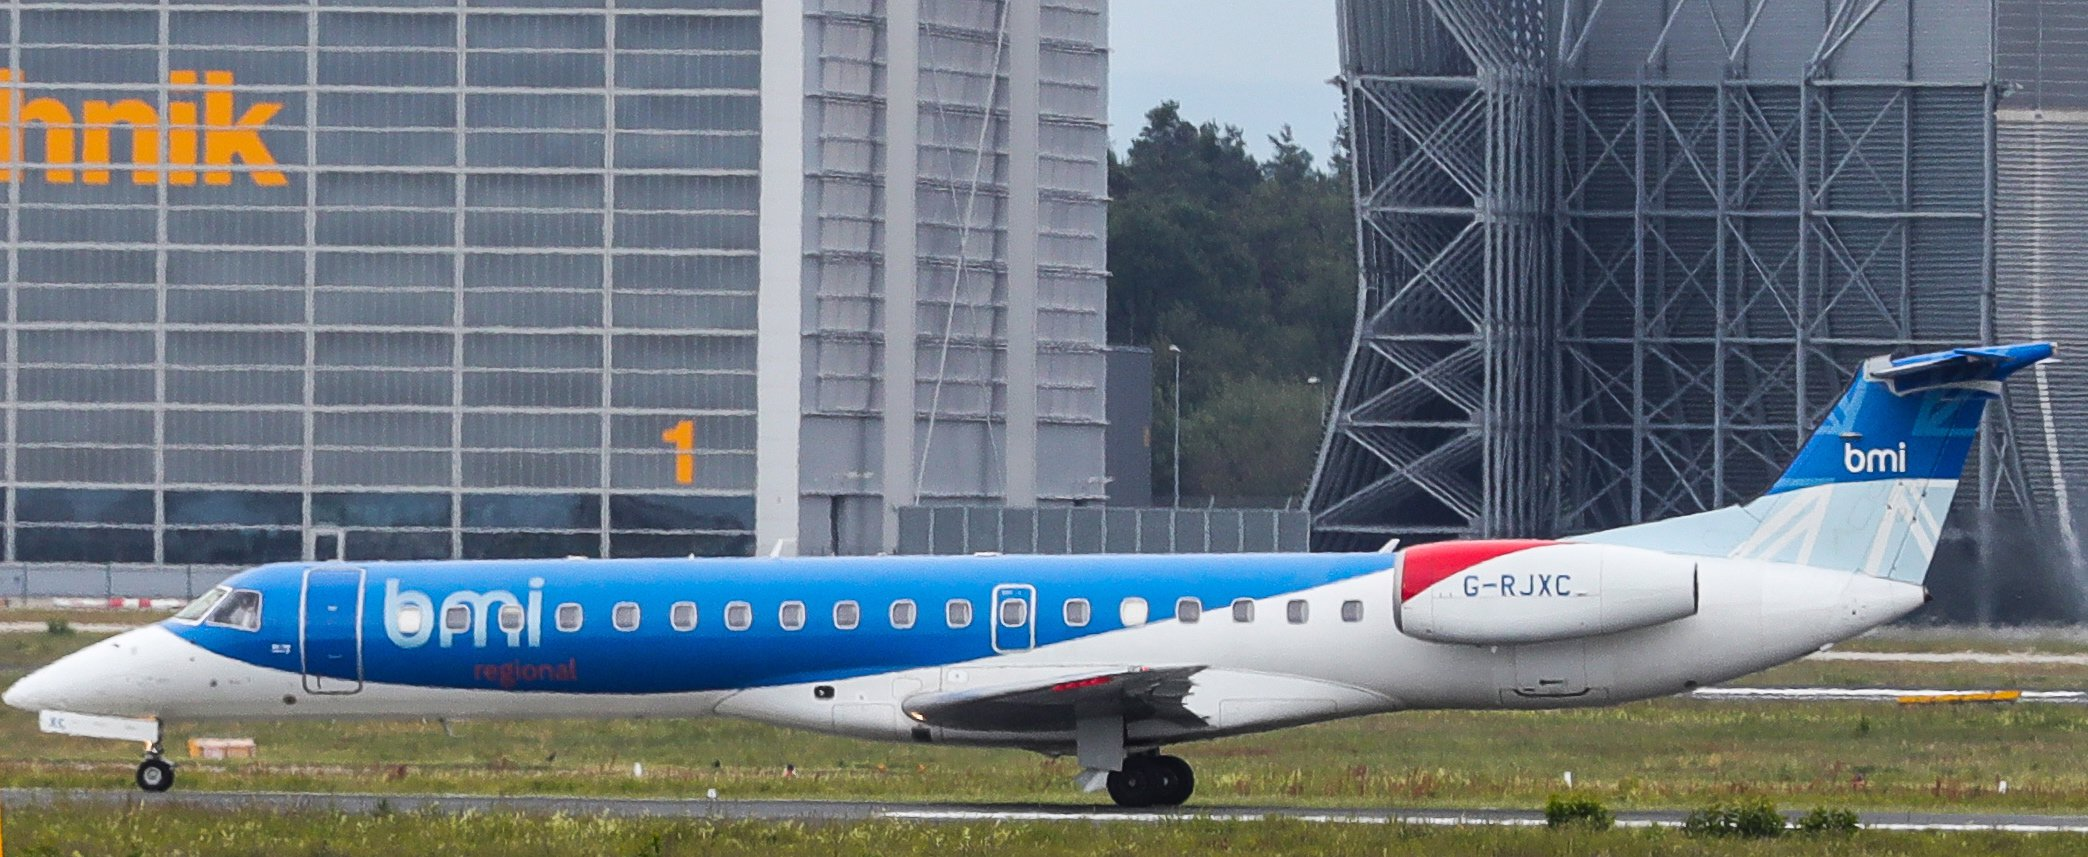 A Flybmi plane on the runway